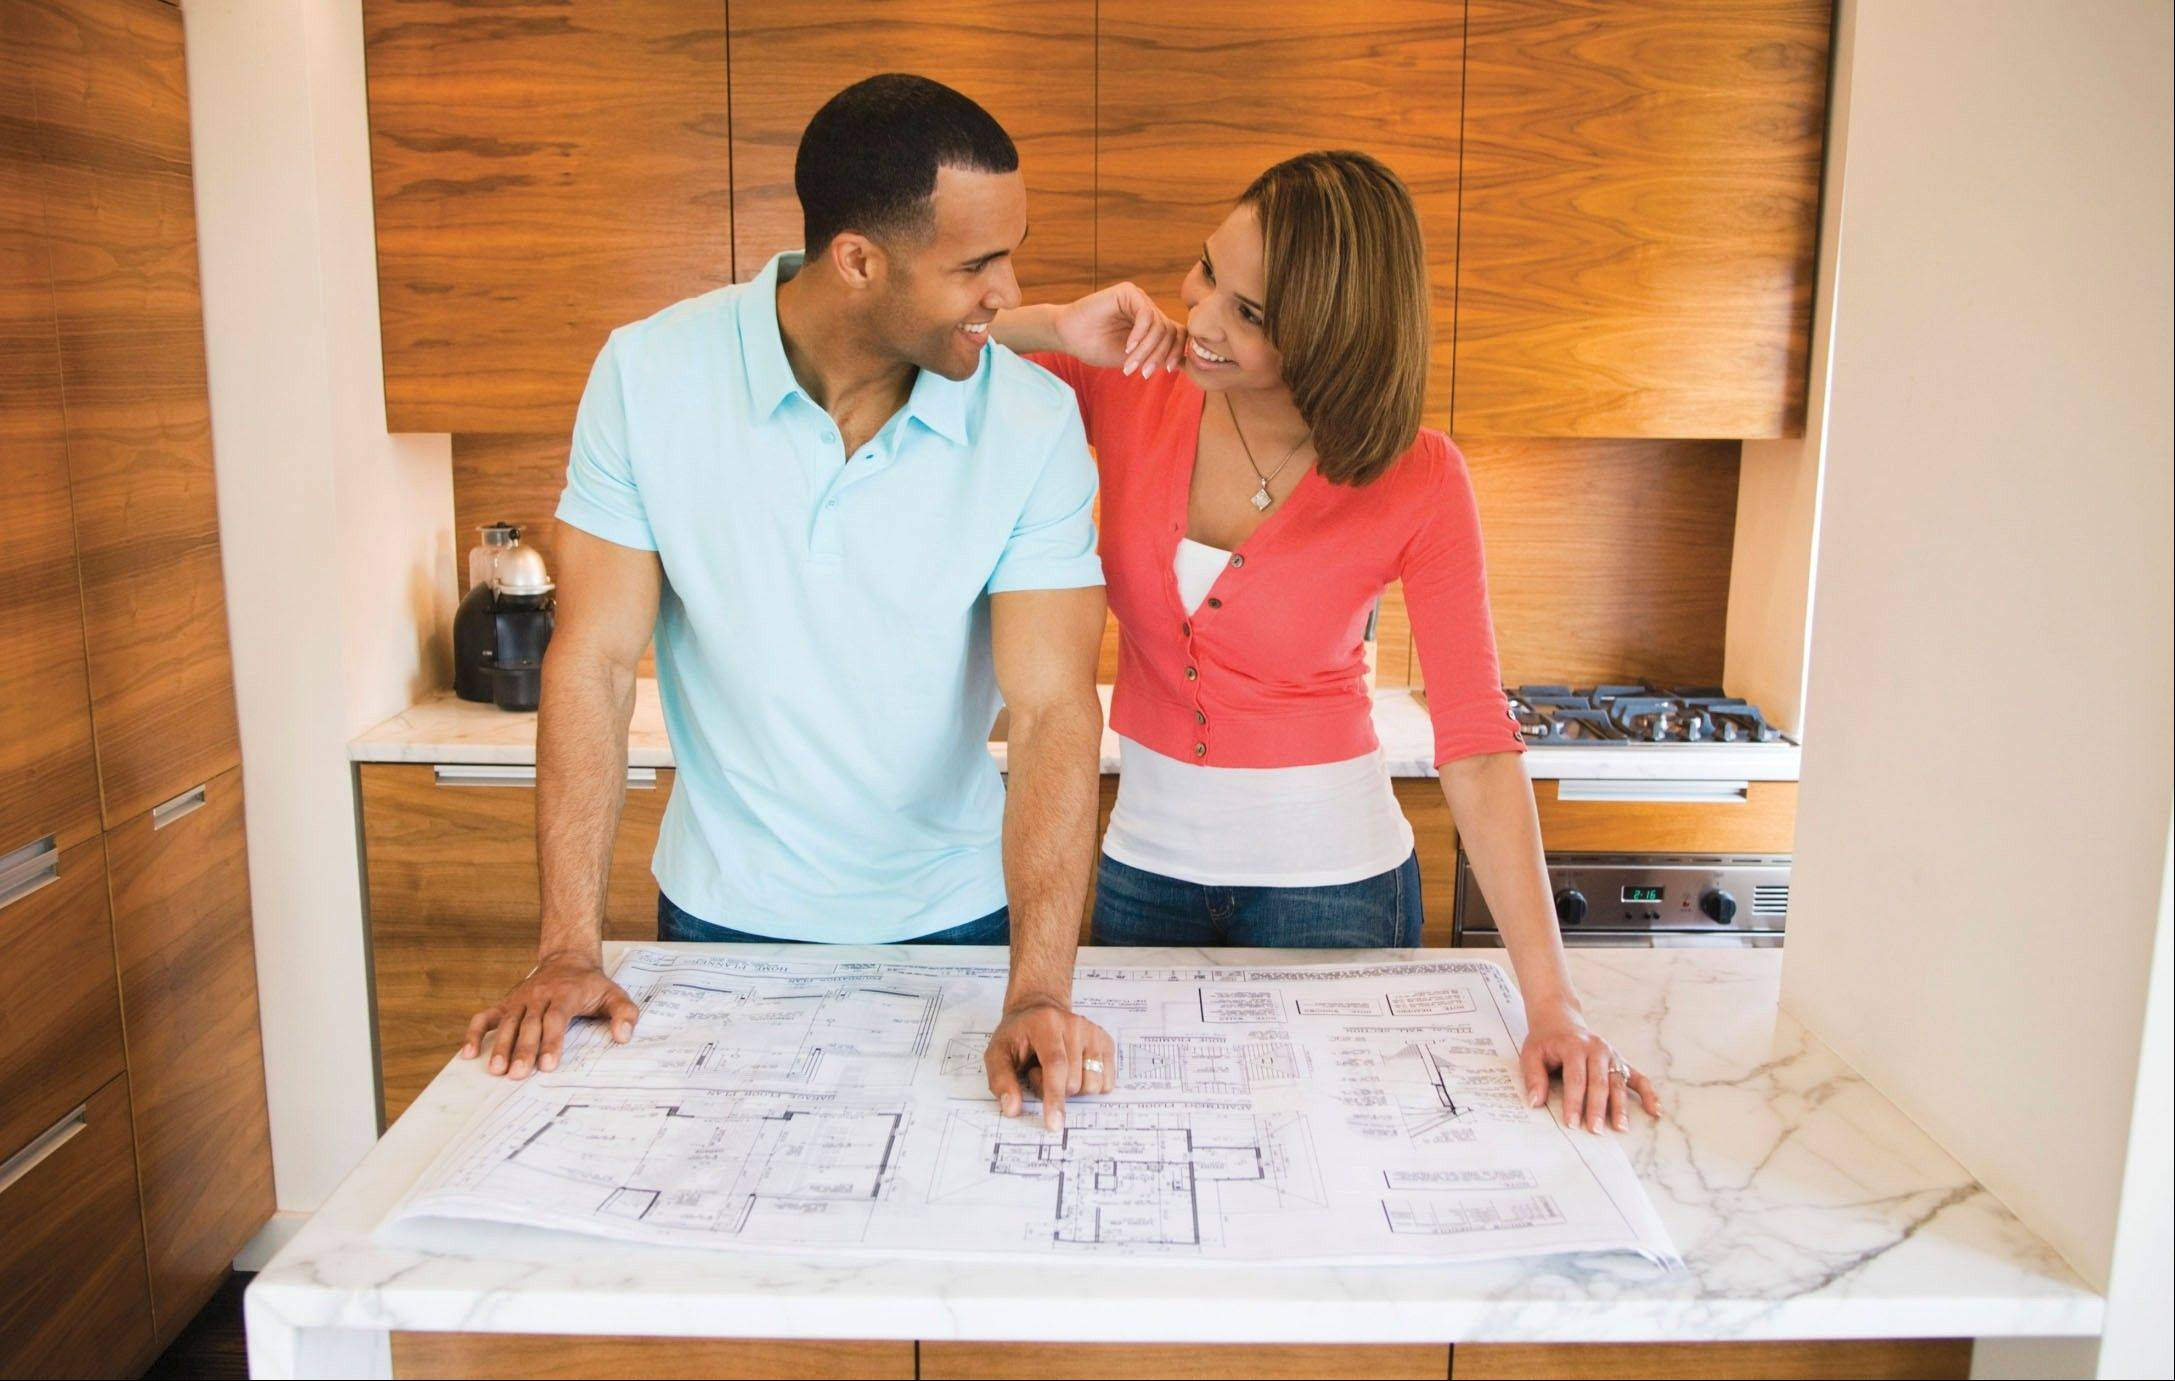 Design experts advise families to reserve a 10-percent contigency fund for unexpected expenses and unplanned upgrades.